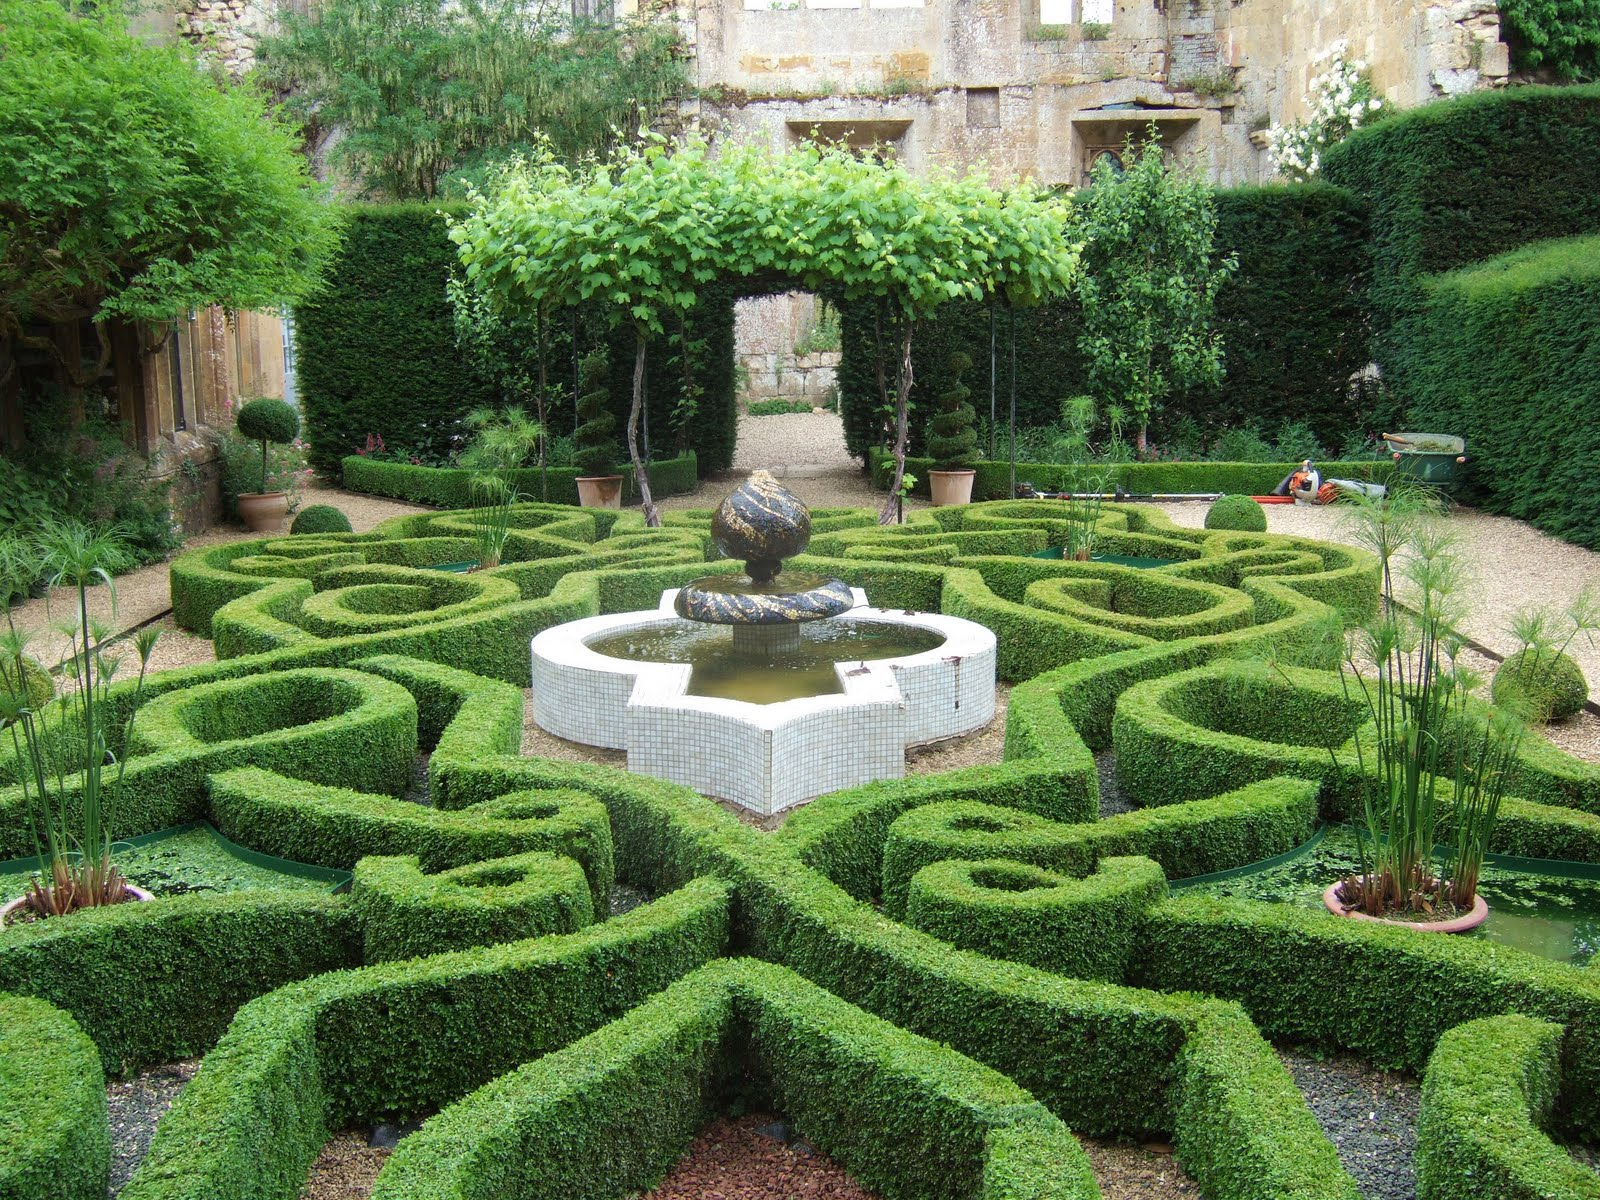 Photos2pleaseu knot garden for Tudor knot garden designs